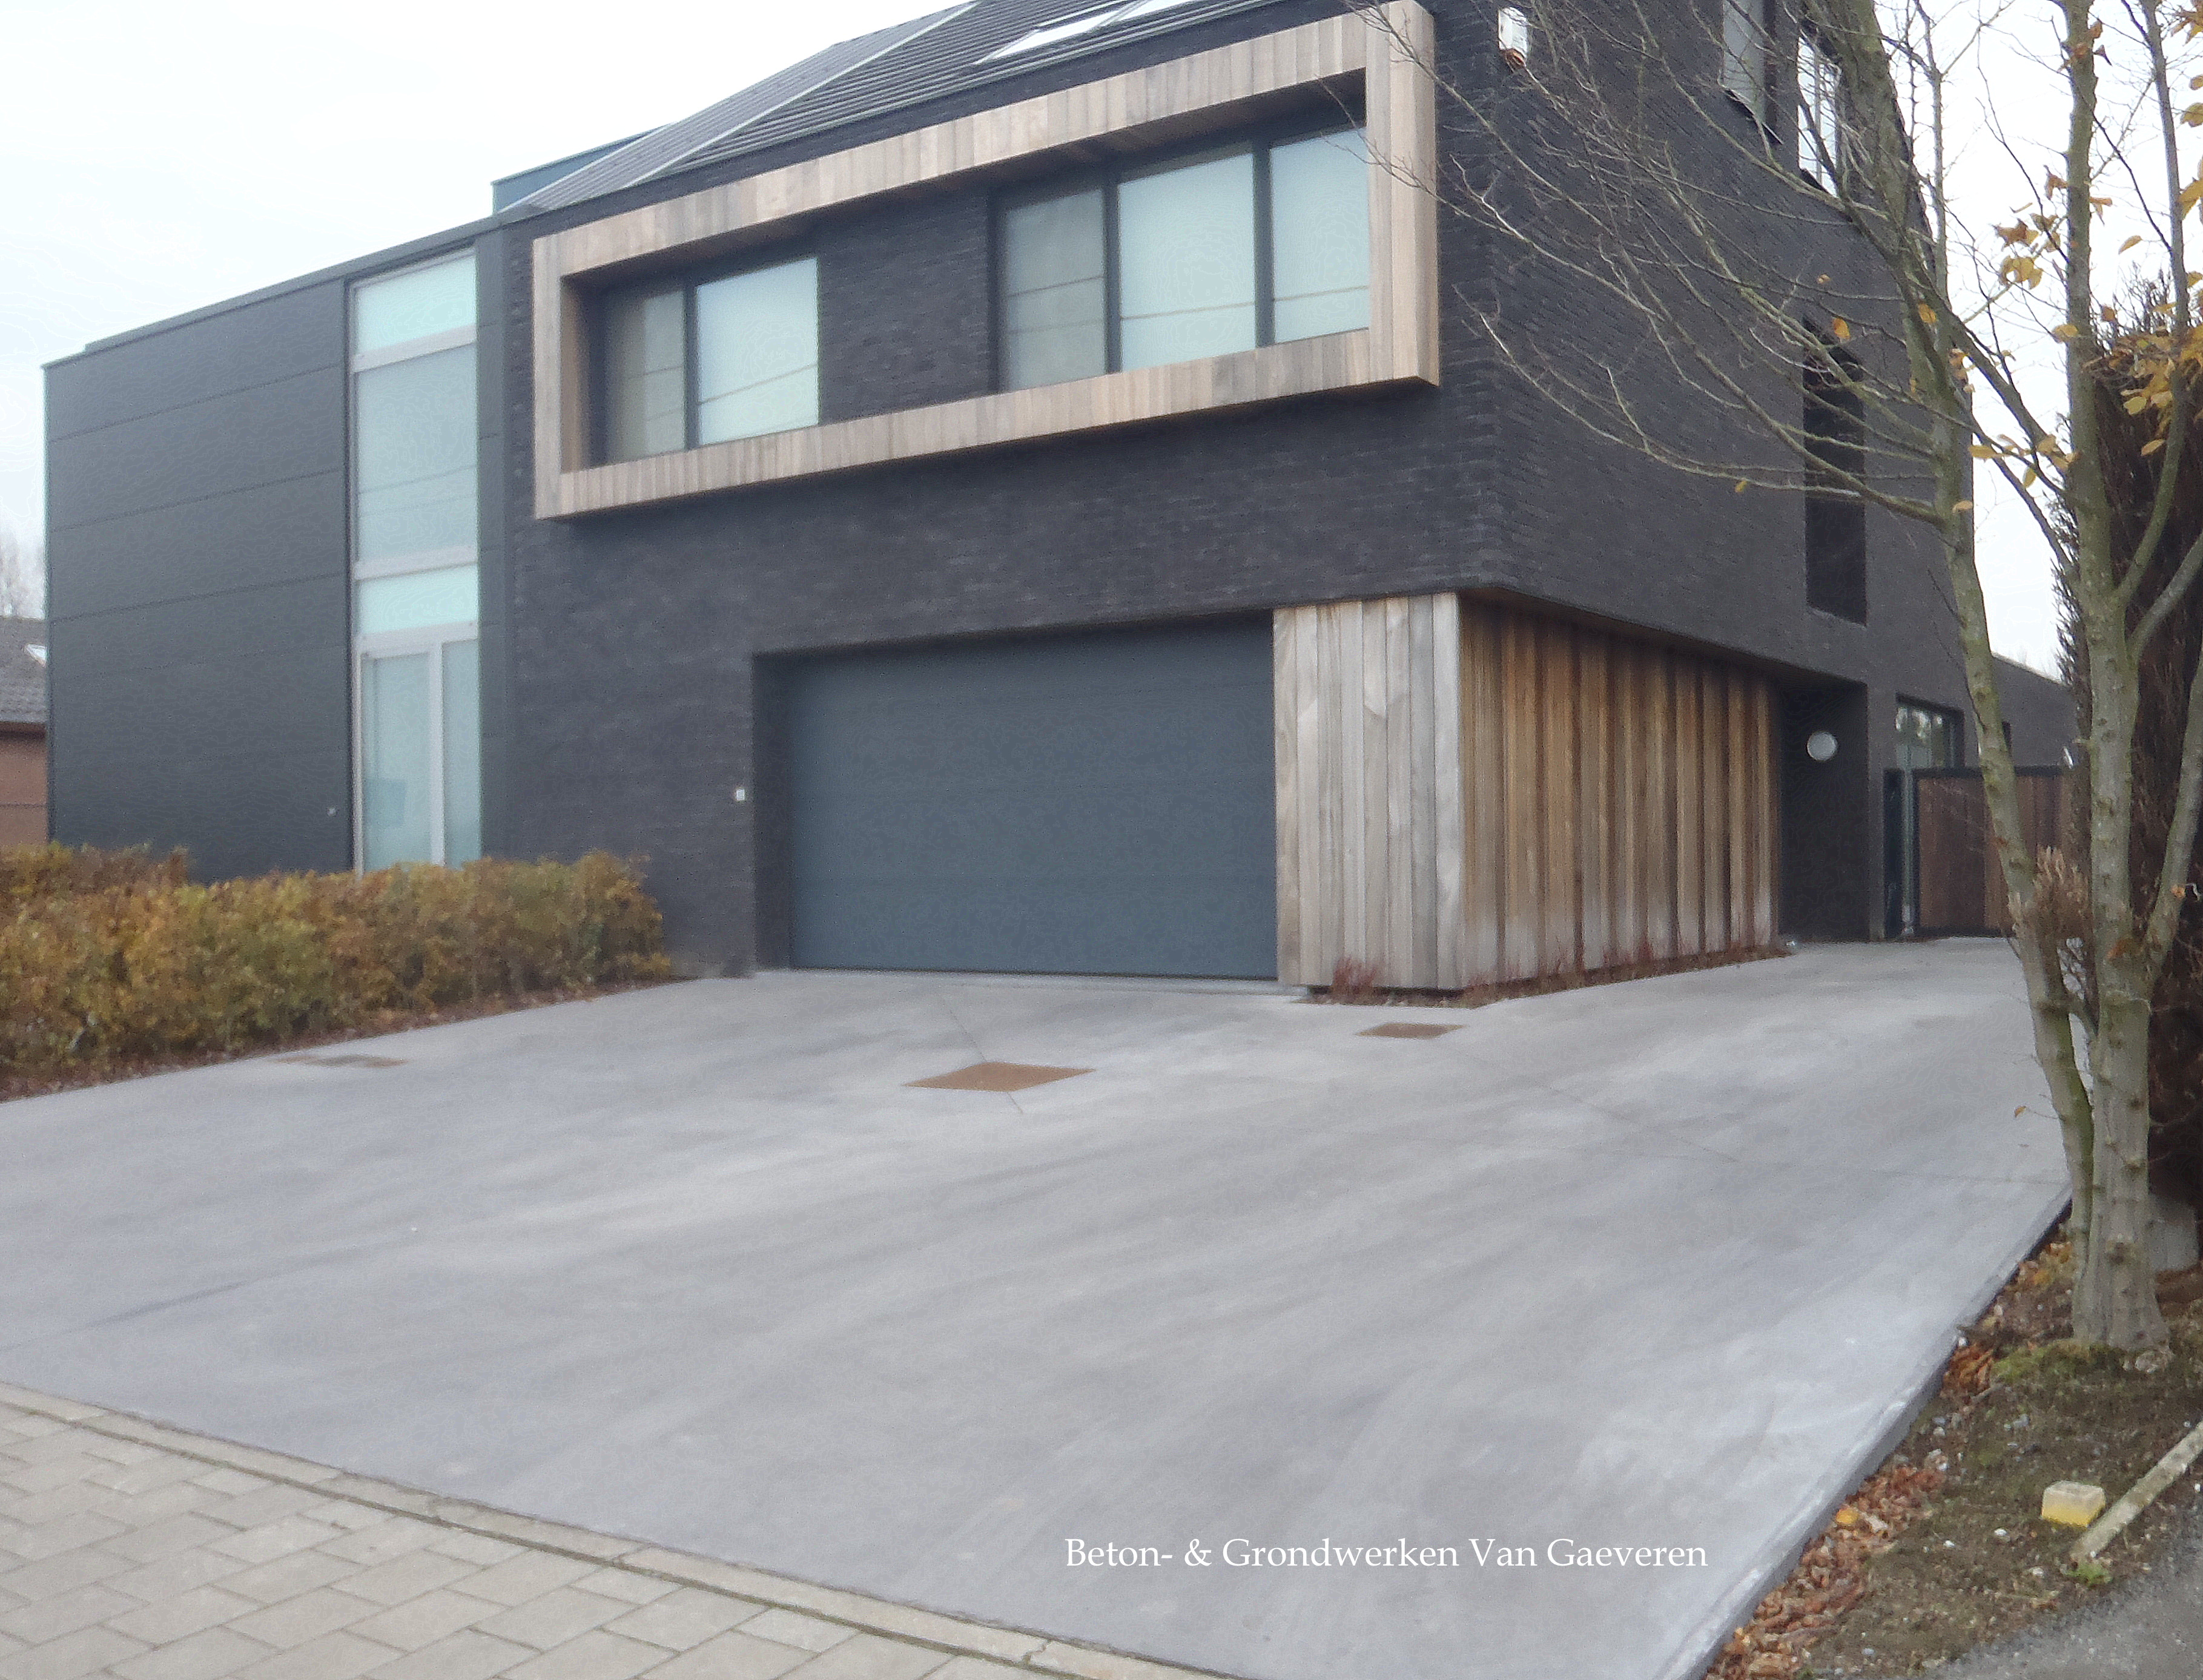 Oprit in beton beton grondwerken van gaeveren nv for Lay outs buiten helling